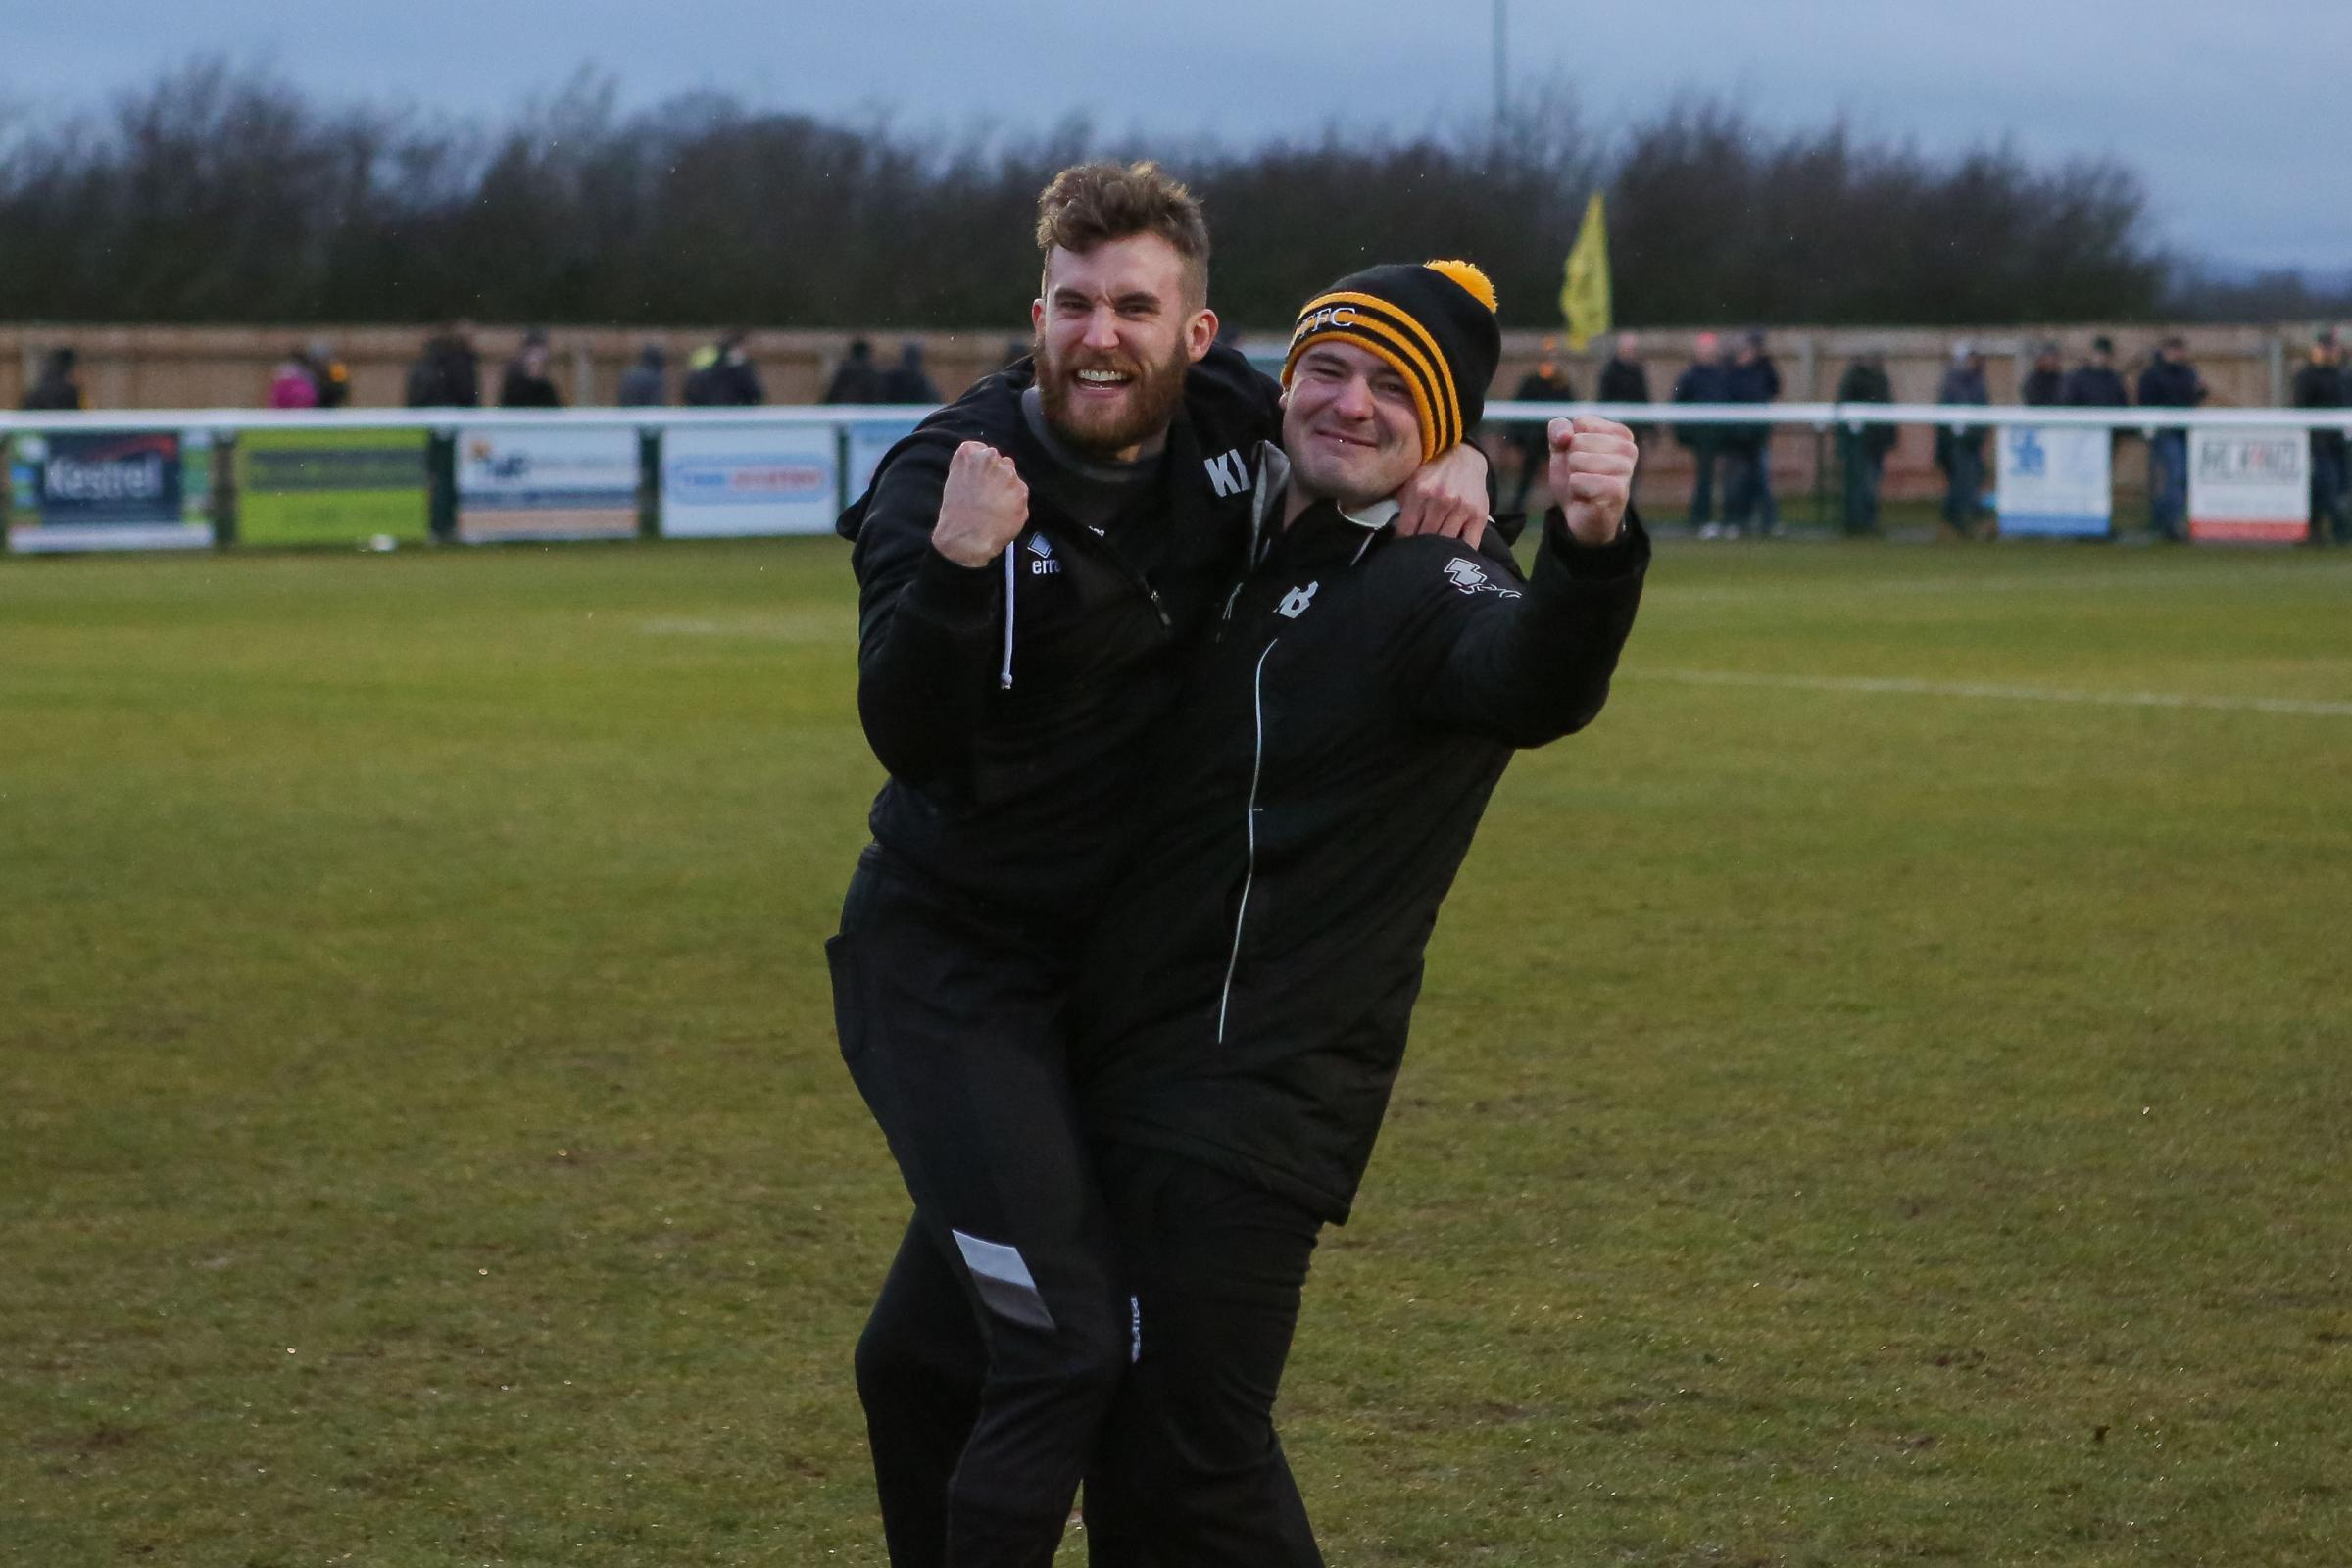 Melksham Town manager Kieran Baggs (left) and Luke Ballinger celebrate their win against Tring Athletic in the last round of the Vase Picture: JOHN CUTHBERTSON